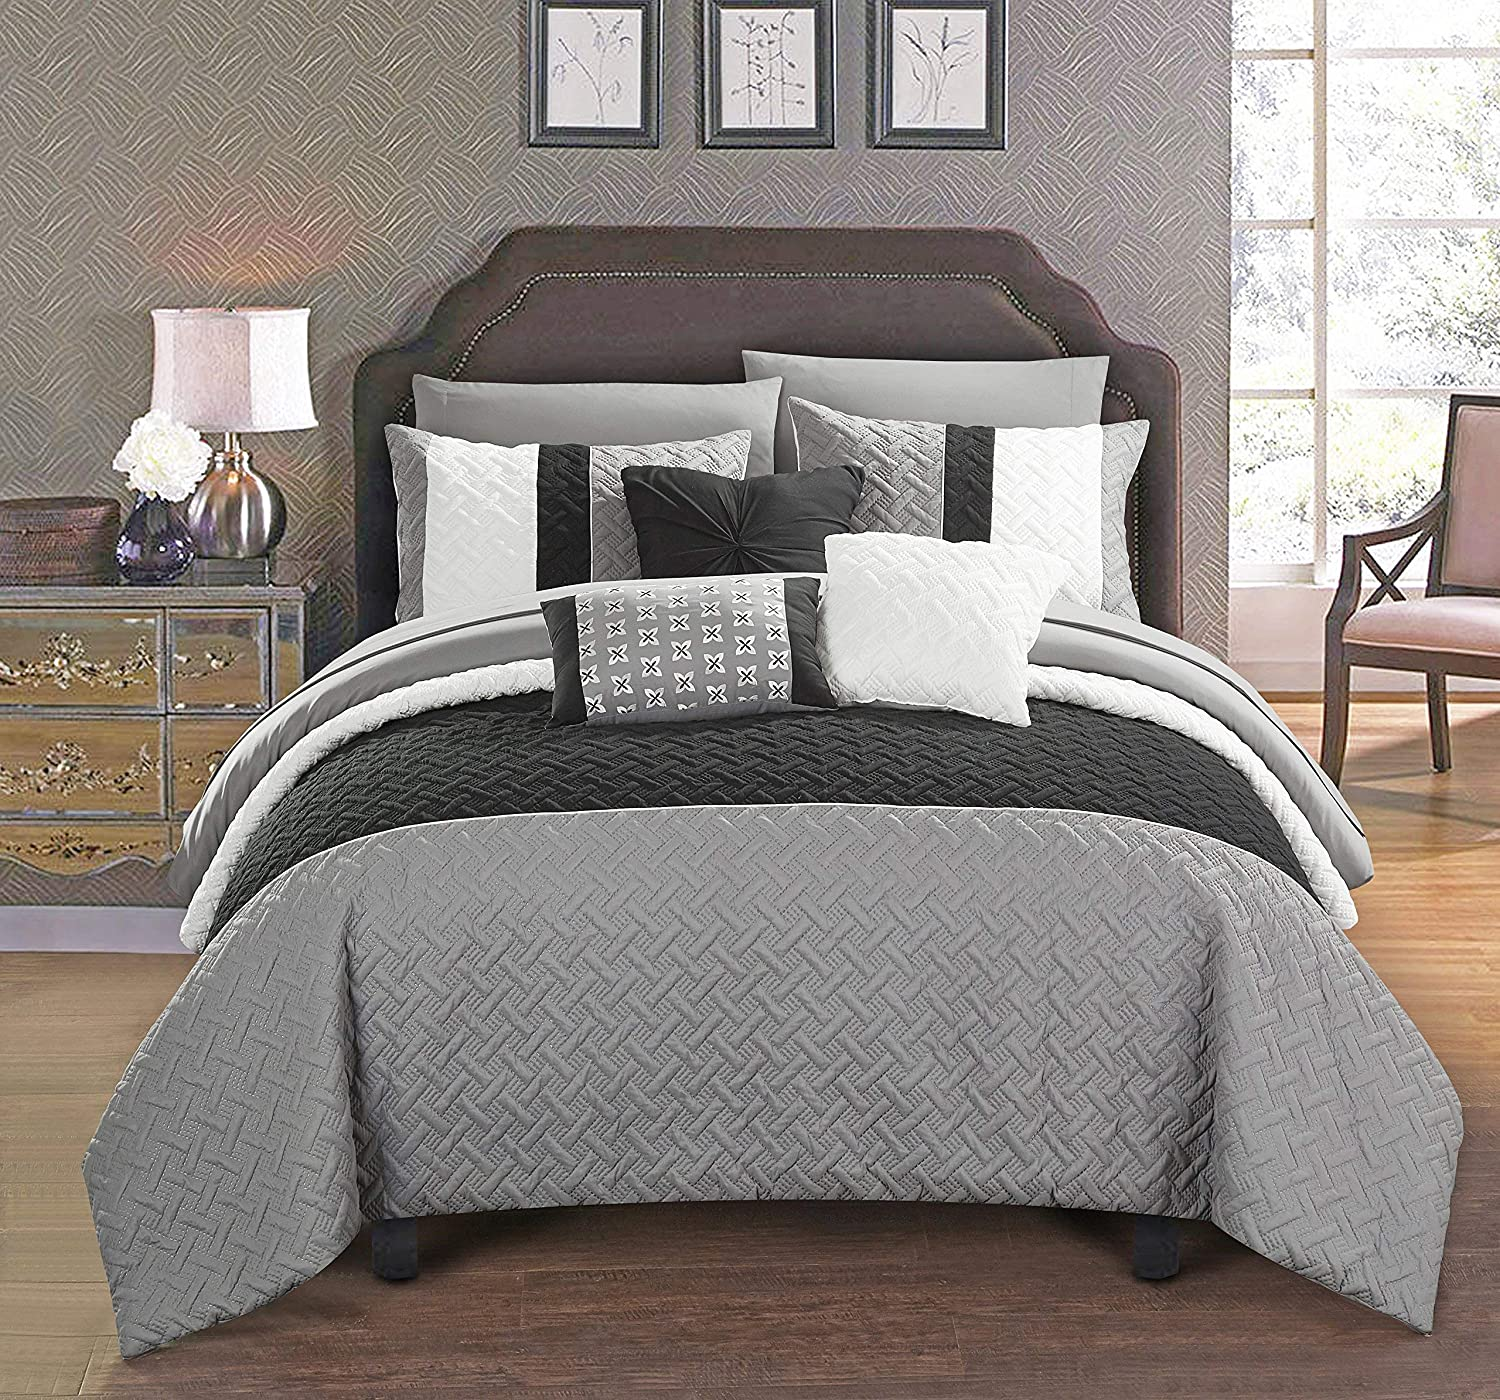 Sheets Decorative Pillows Shams Included Queen Black Chic Home Osnat 10 Piece Comforter Set Color Block Quilted Embroidered Design Bed in a Bag Bedding